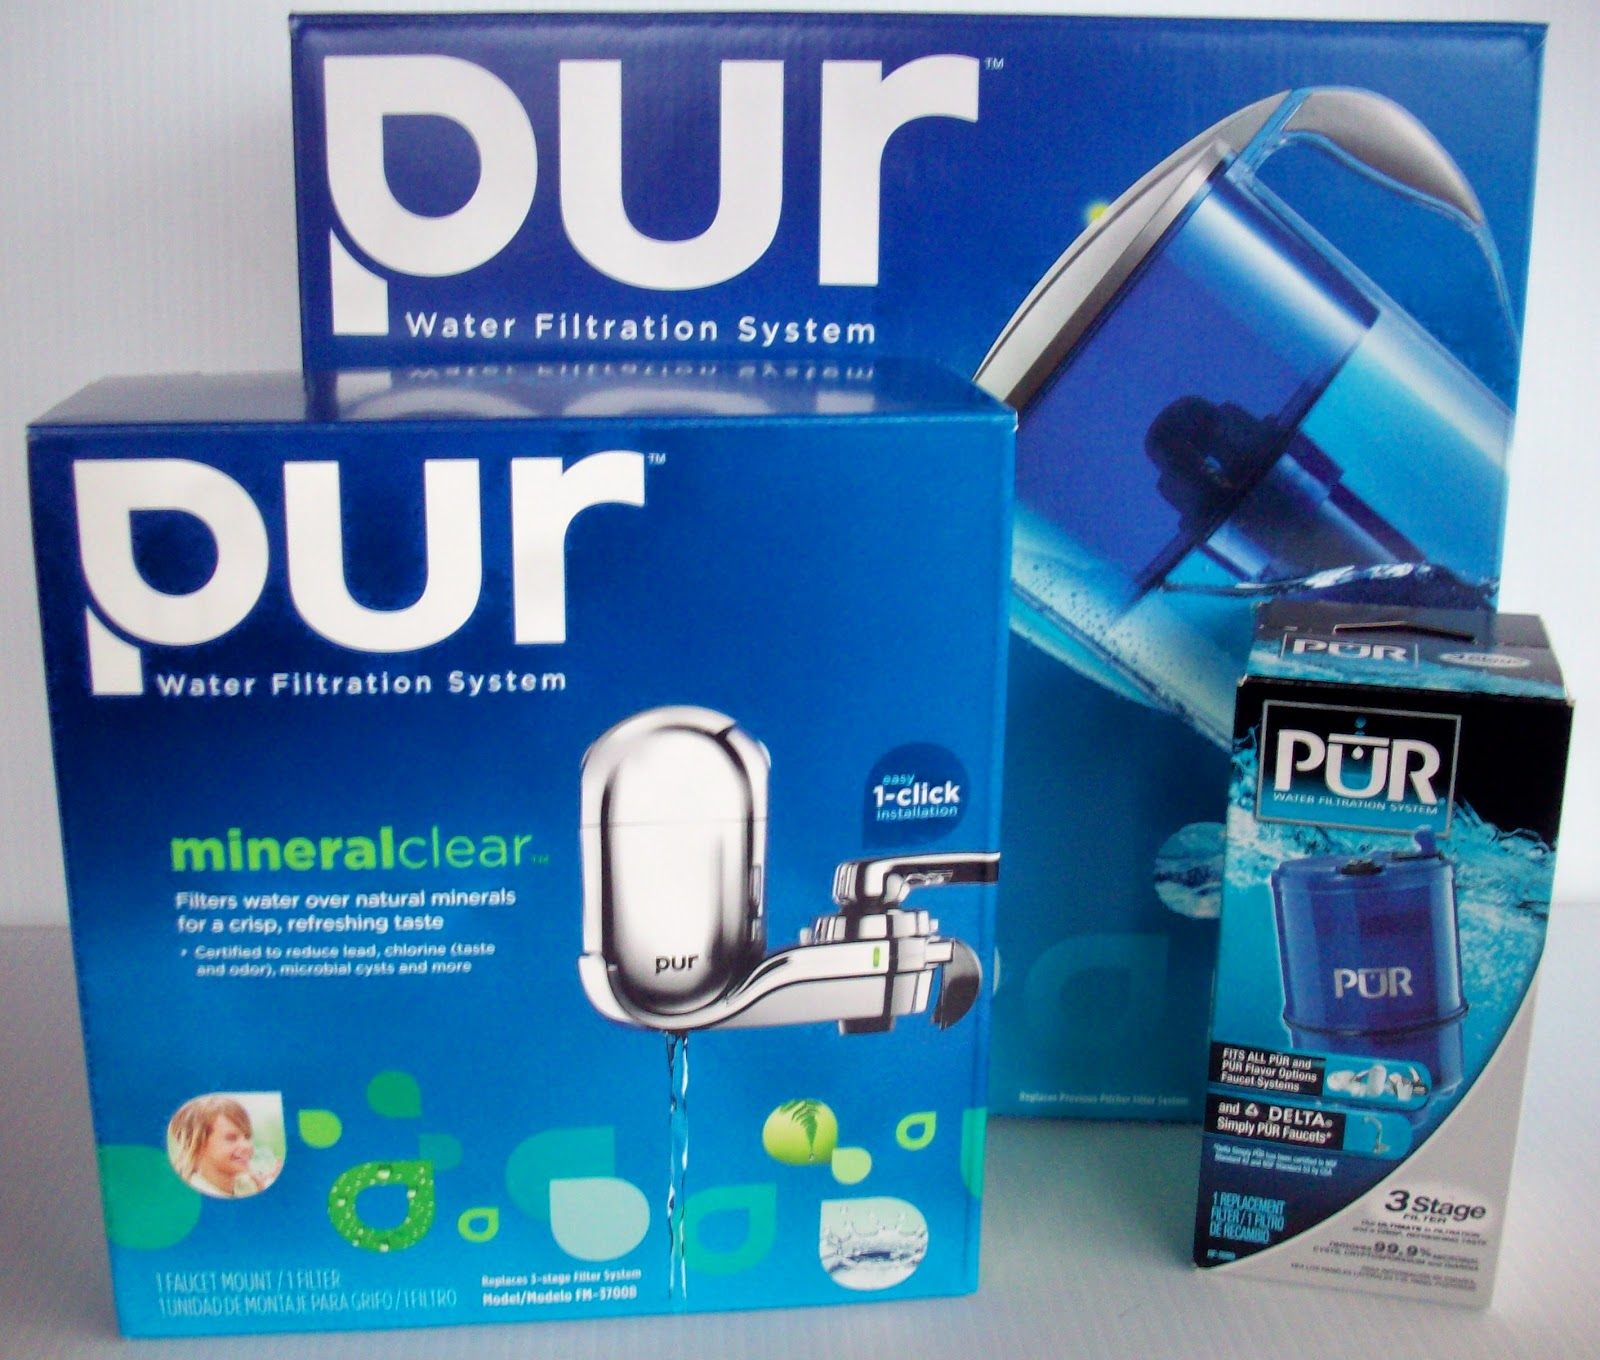 the pur water filter system was super easy to install i literally had it on within one minute the are super simple